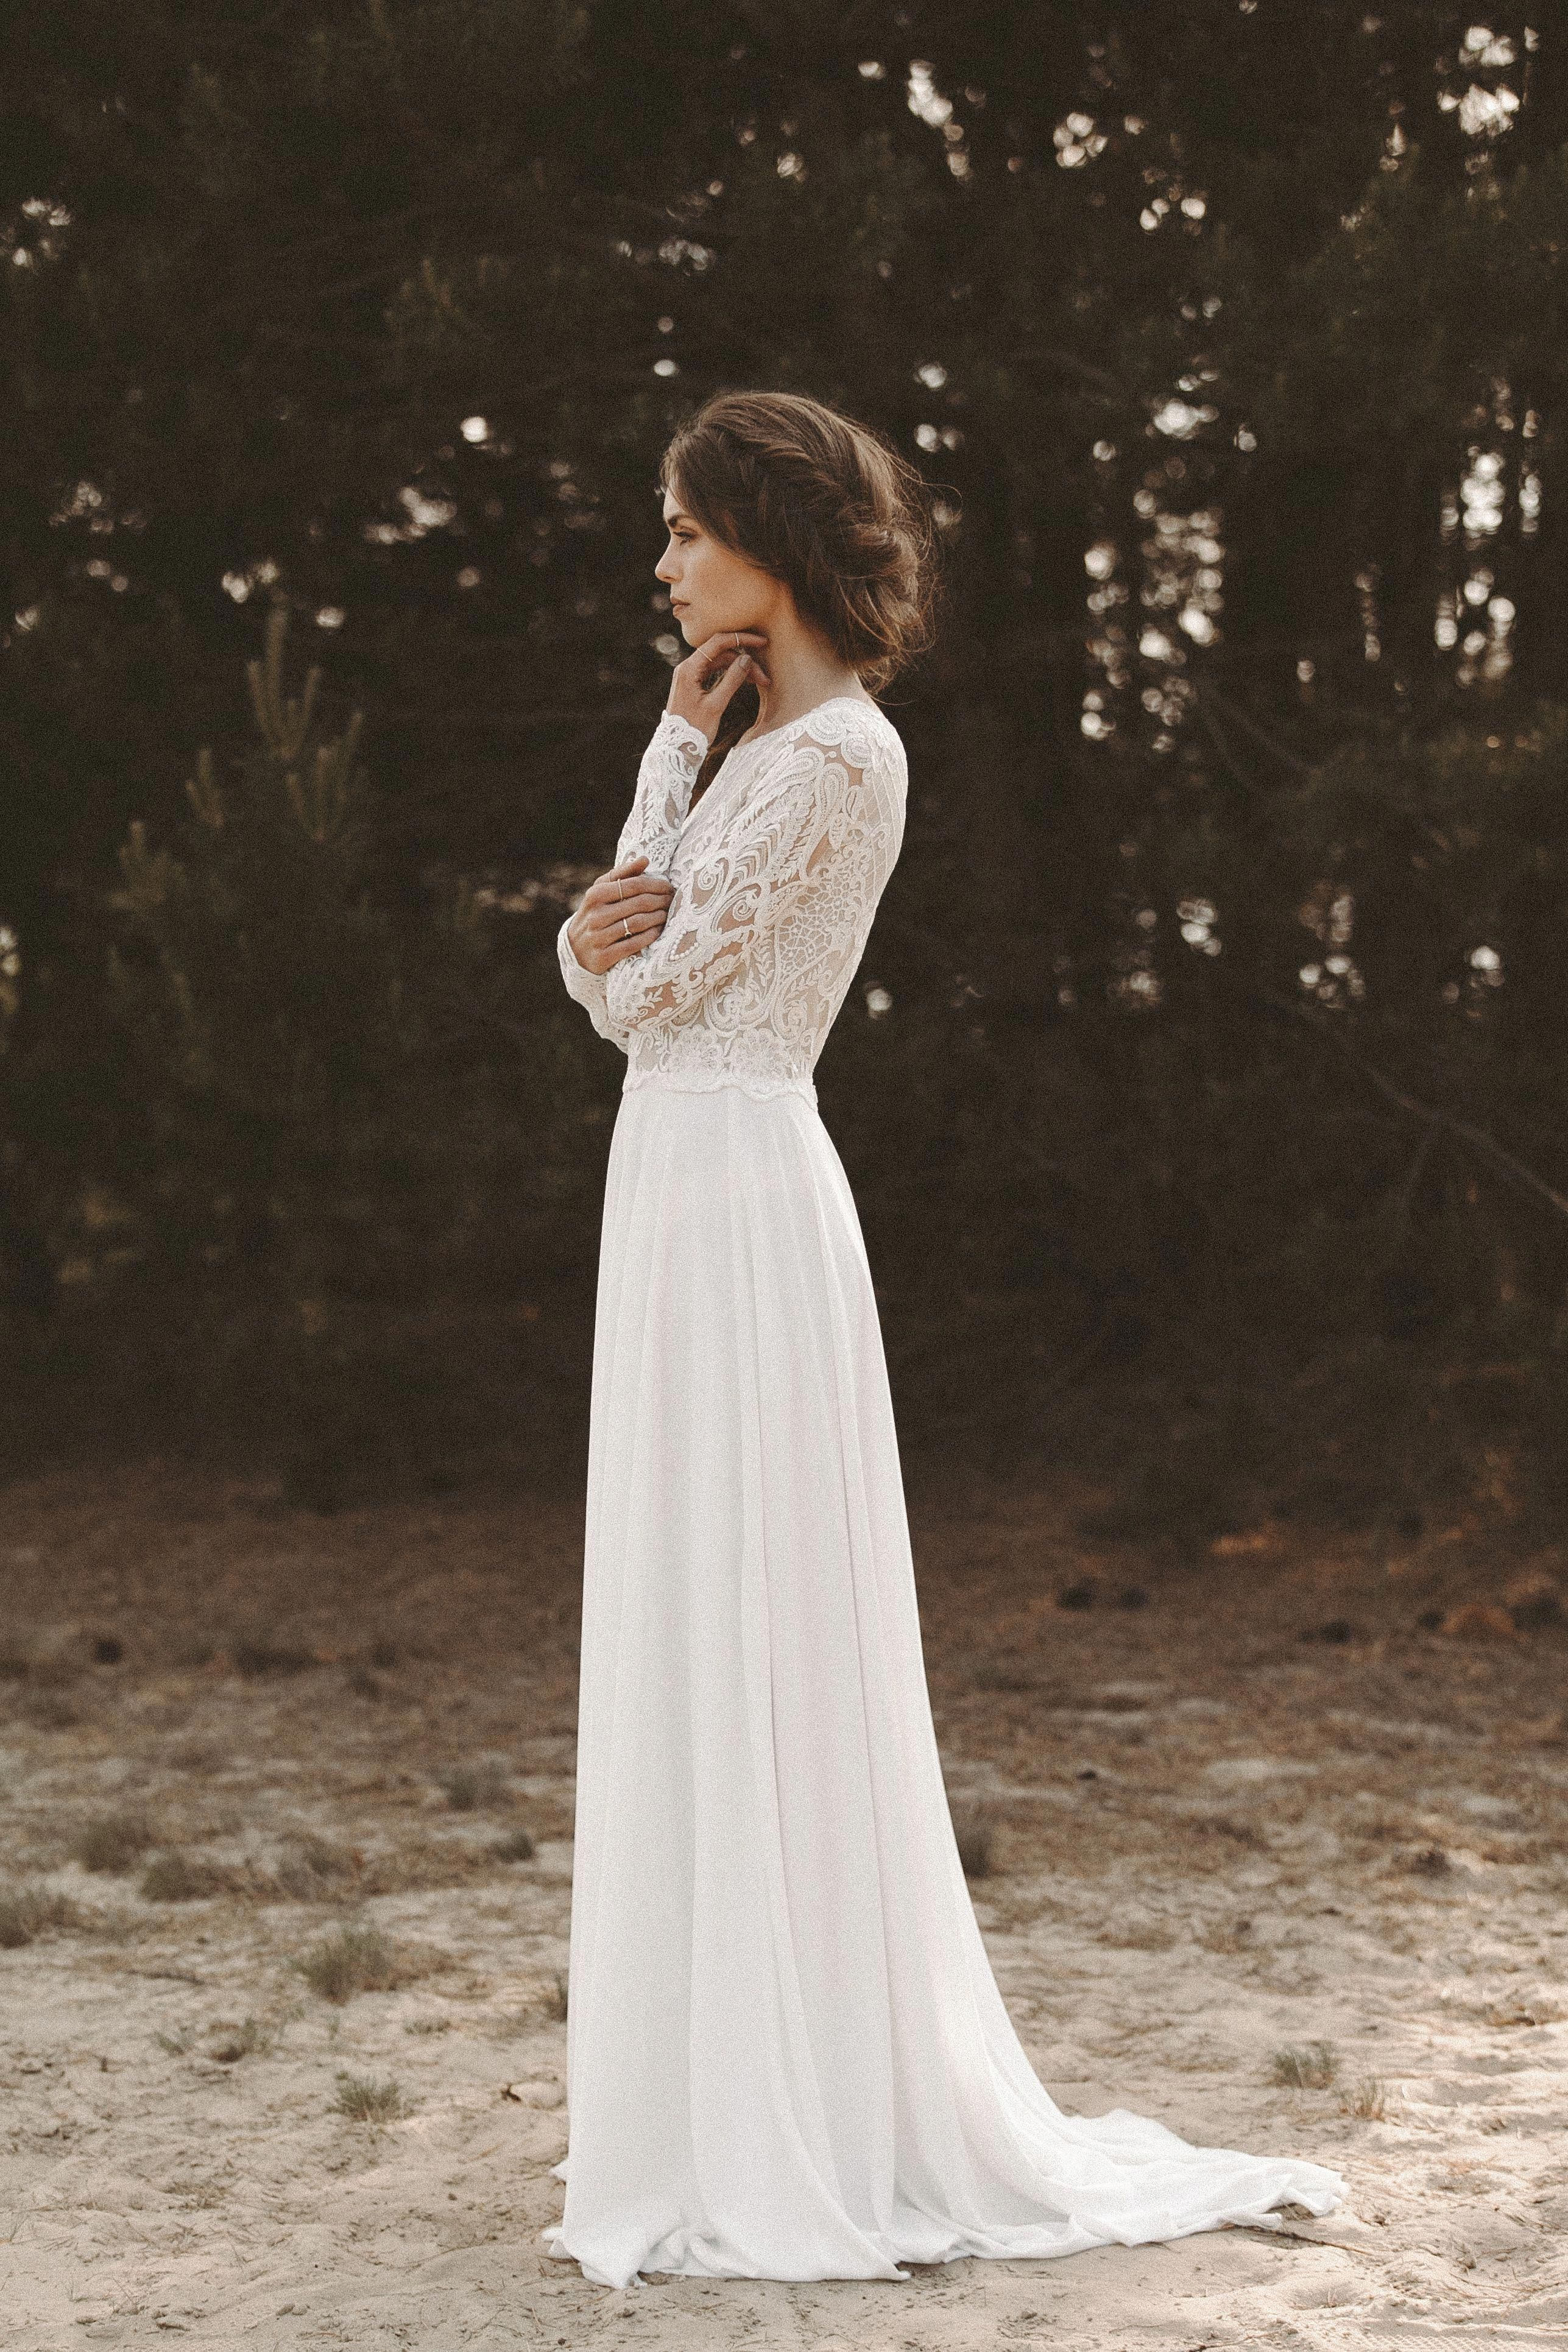 Wedding Dresses Sweet wedding gown inspirations. Notice - gown id